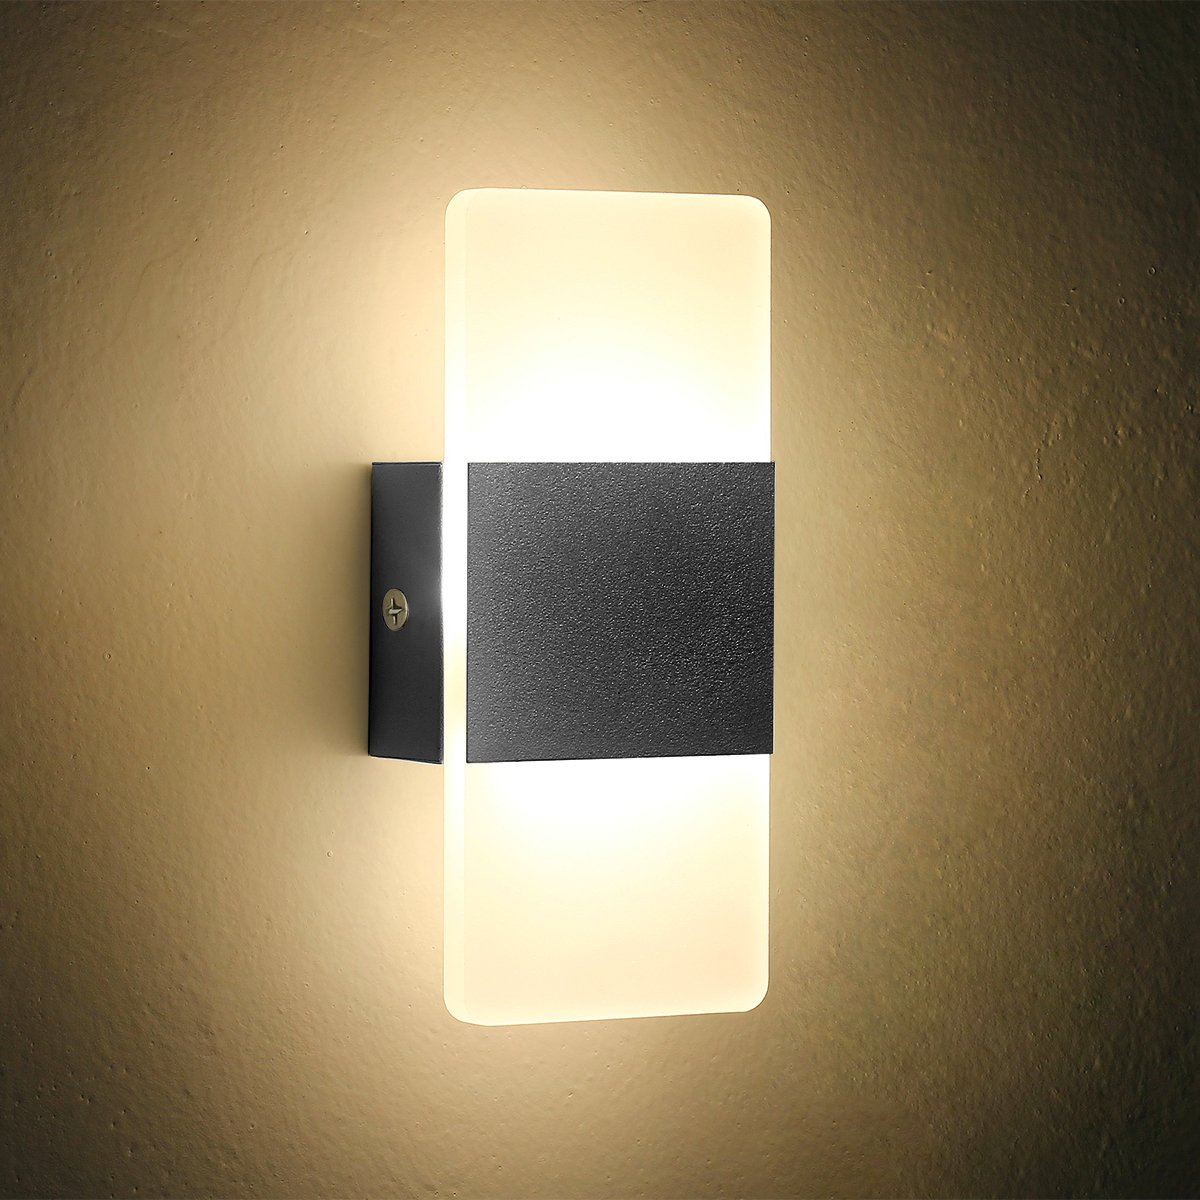 Oenbopo led wall light bedside wall lamp modern acrylic led bedroom hallway bathroom wall lamps fixture decorative night light for pathway bedroom